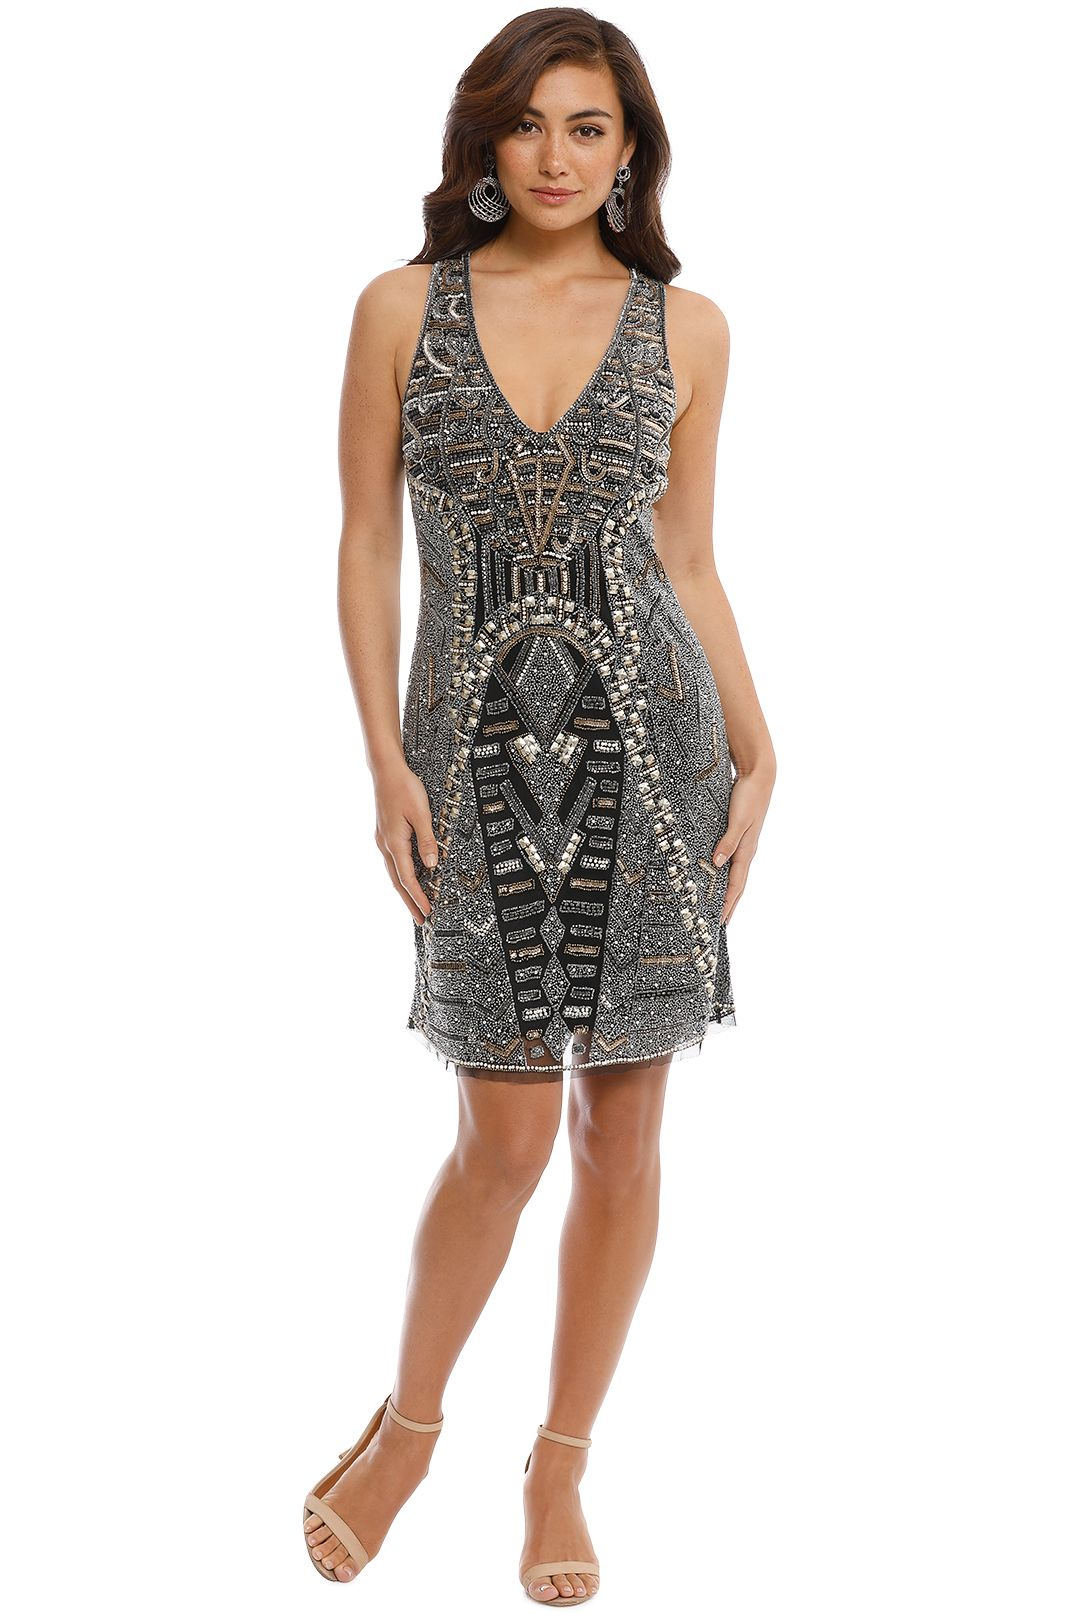 Grace and Blaze - All That Shines Dress - Black - Front